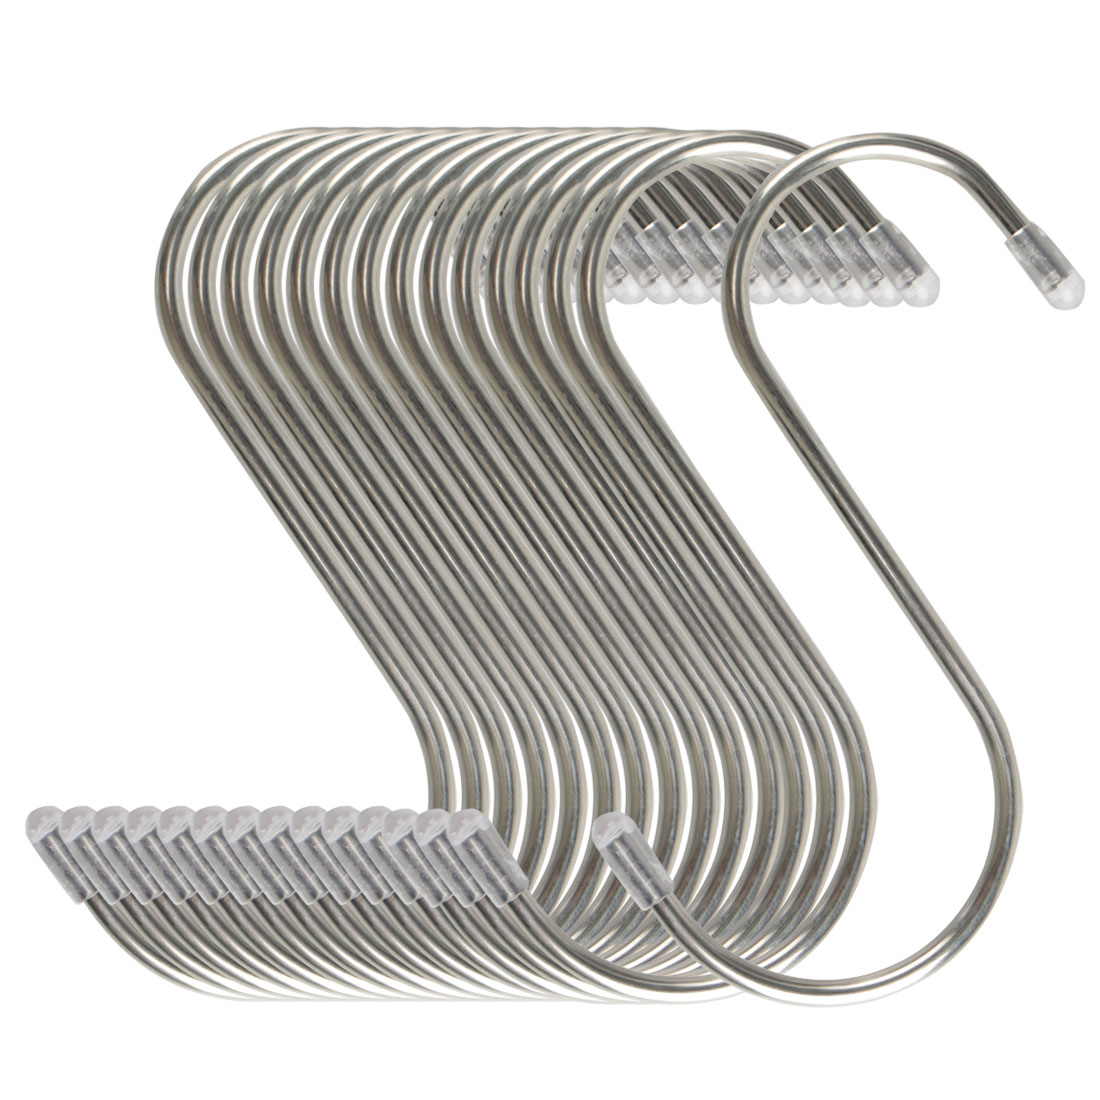 15pcs 4.72 Inch S Shaped Hook Stainless Steel for Kitchenware Hat Coat Holder